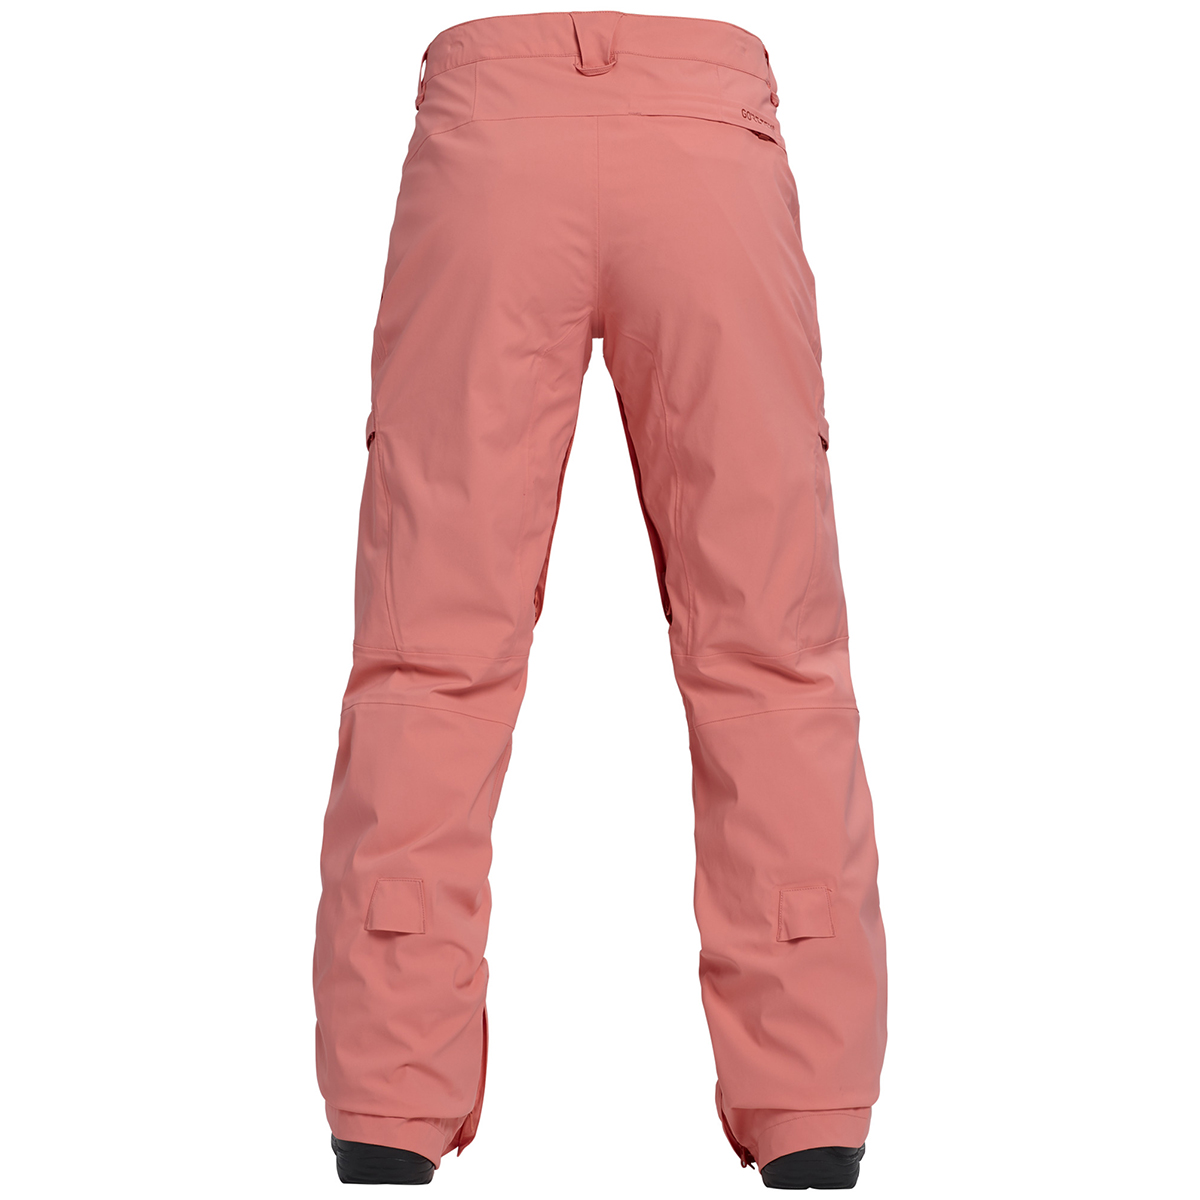 Штаны для сноуборда Burton GORE-TEX Summit Pant Insulated купить в Boardshop №1